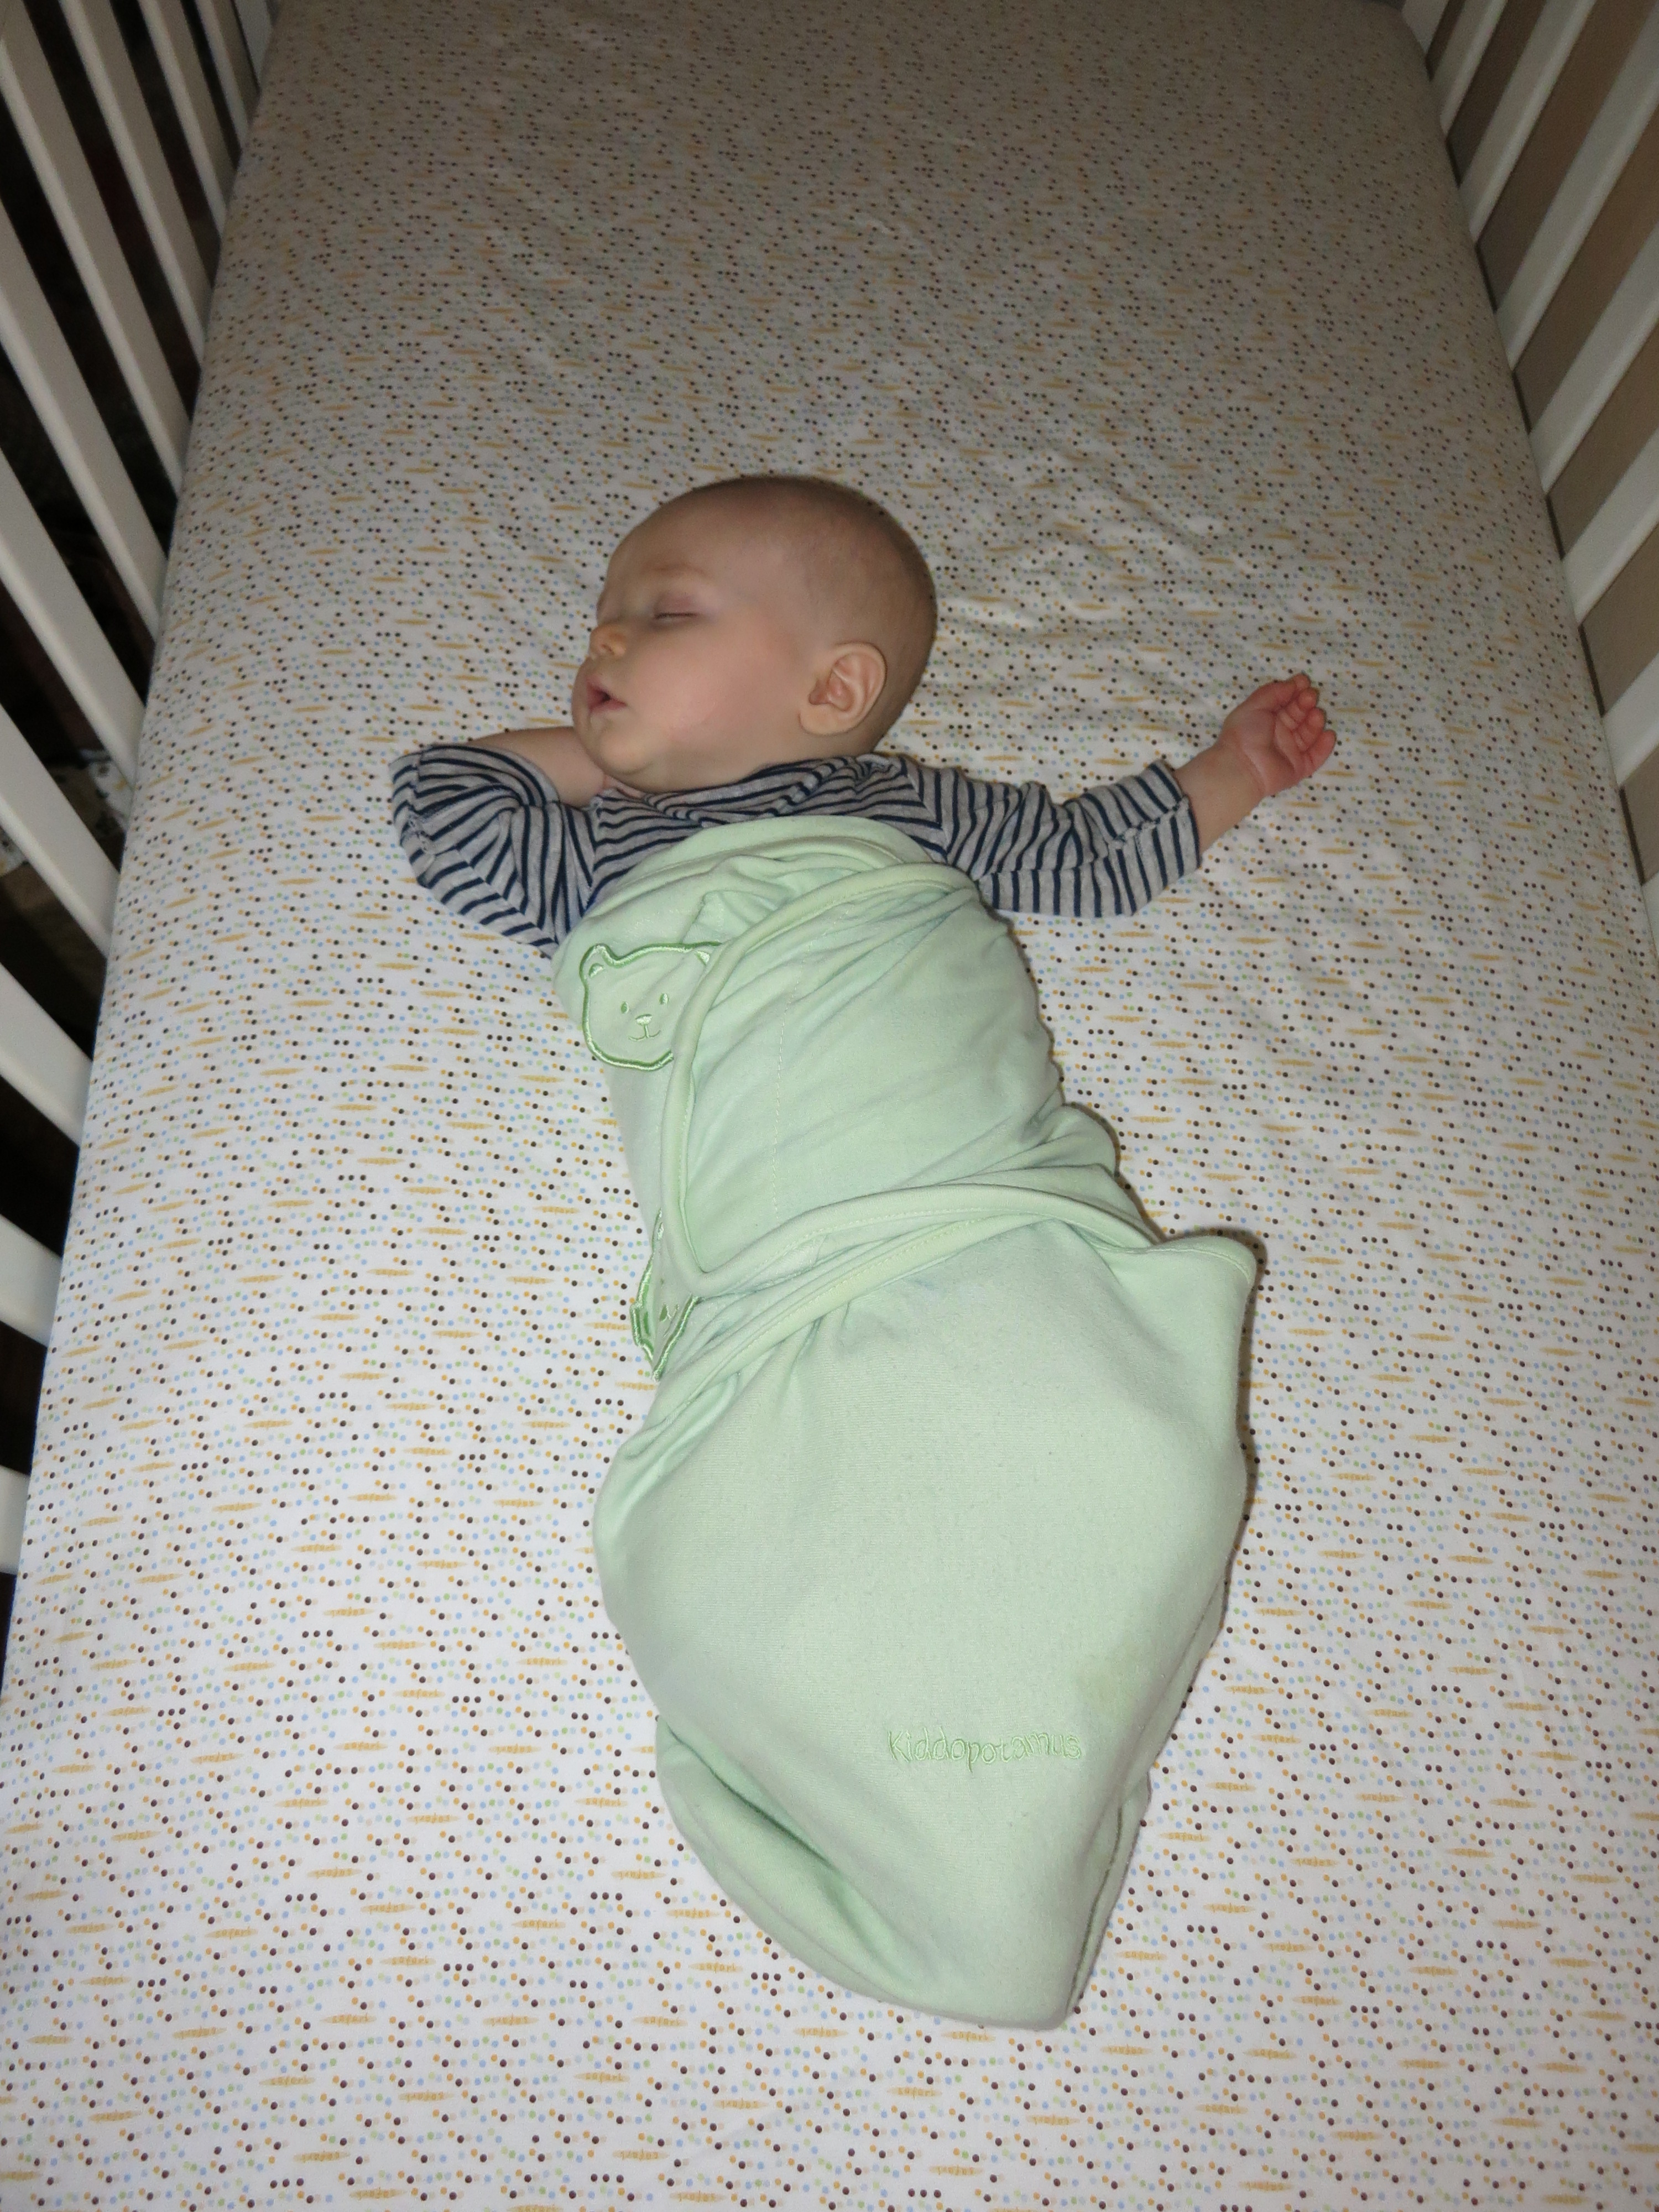 How To Dress Baby For Sleep In Cold Room